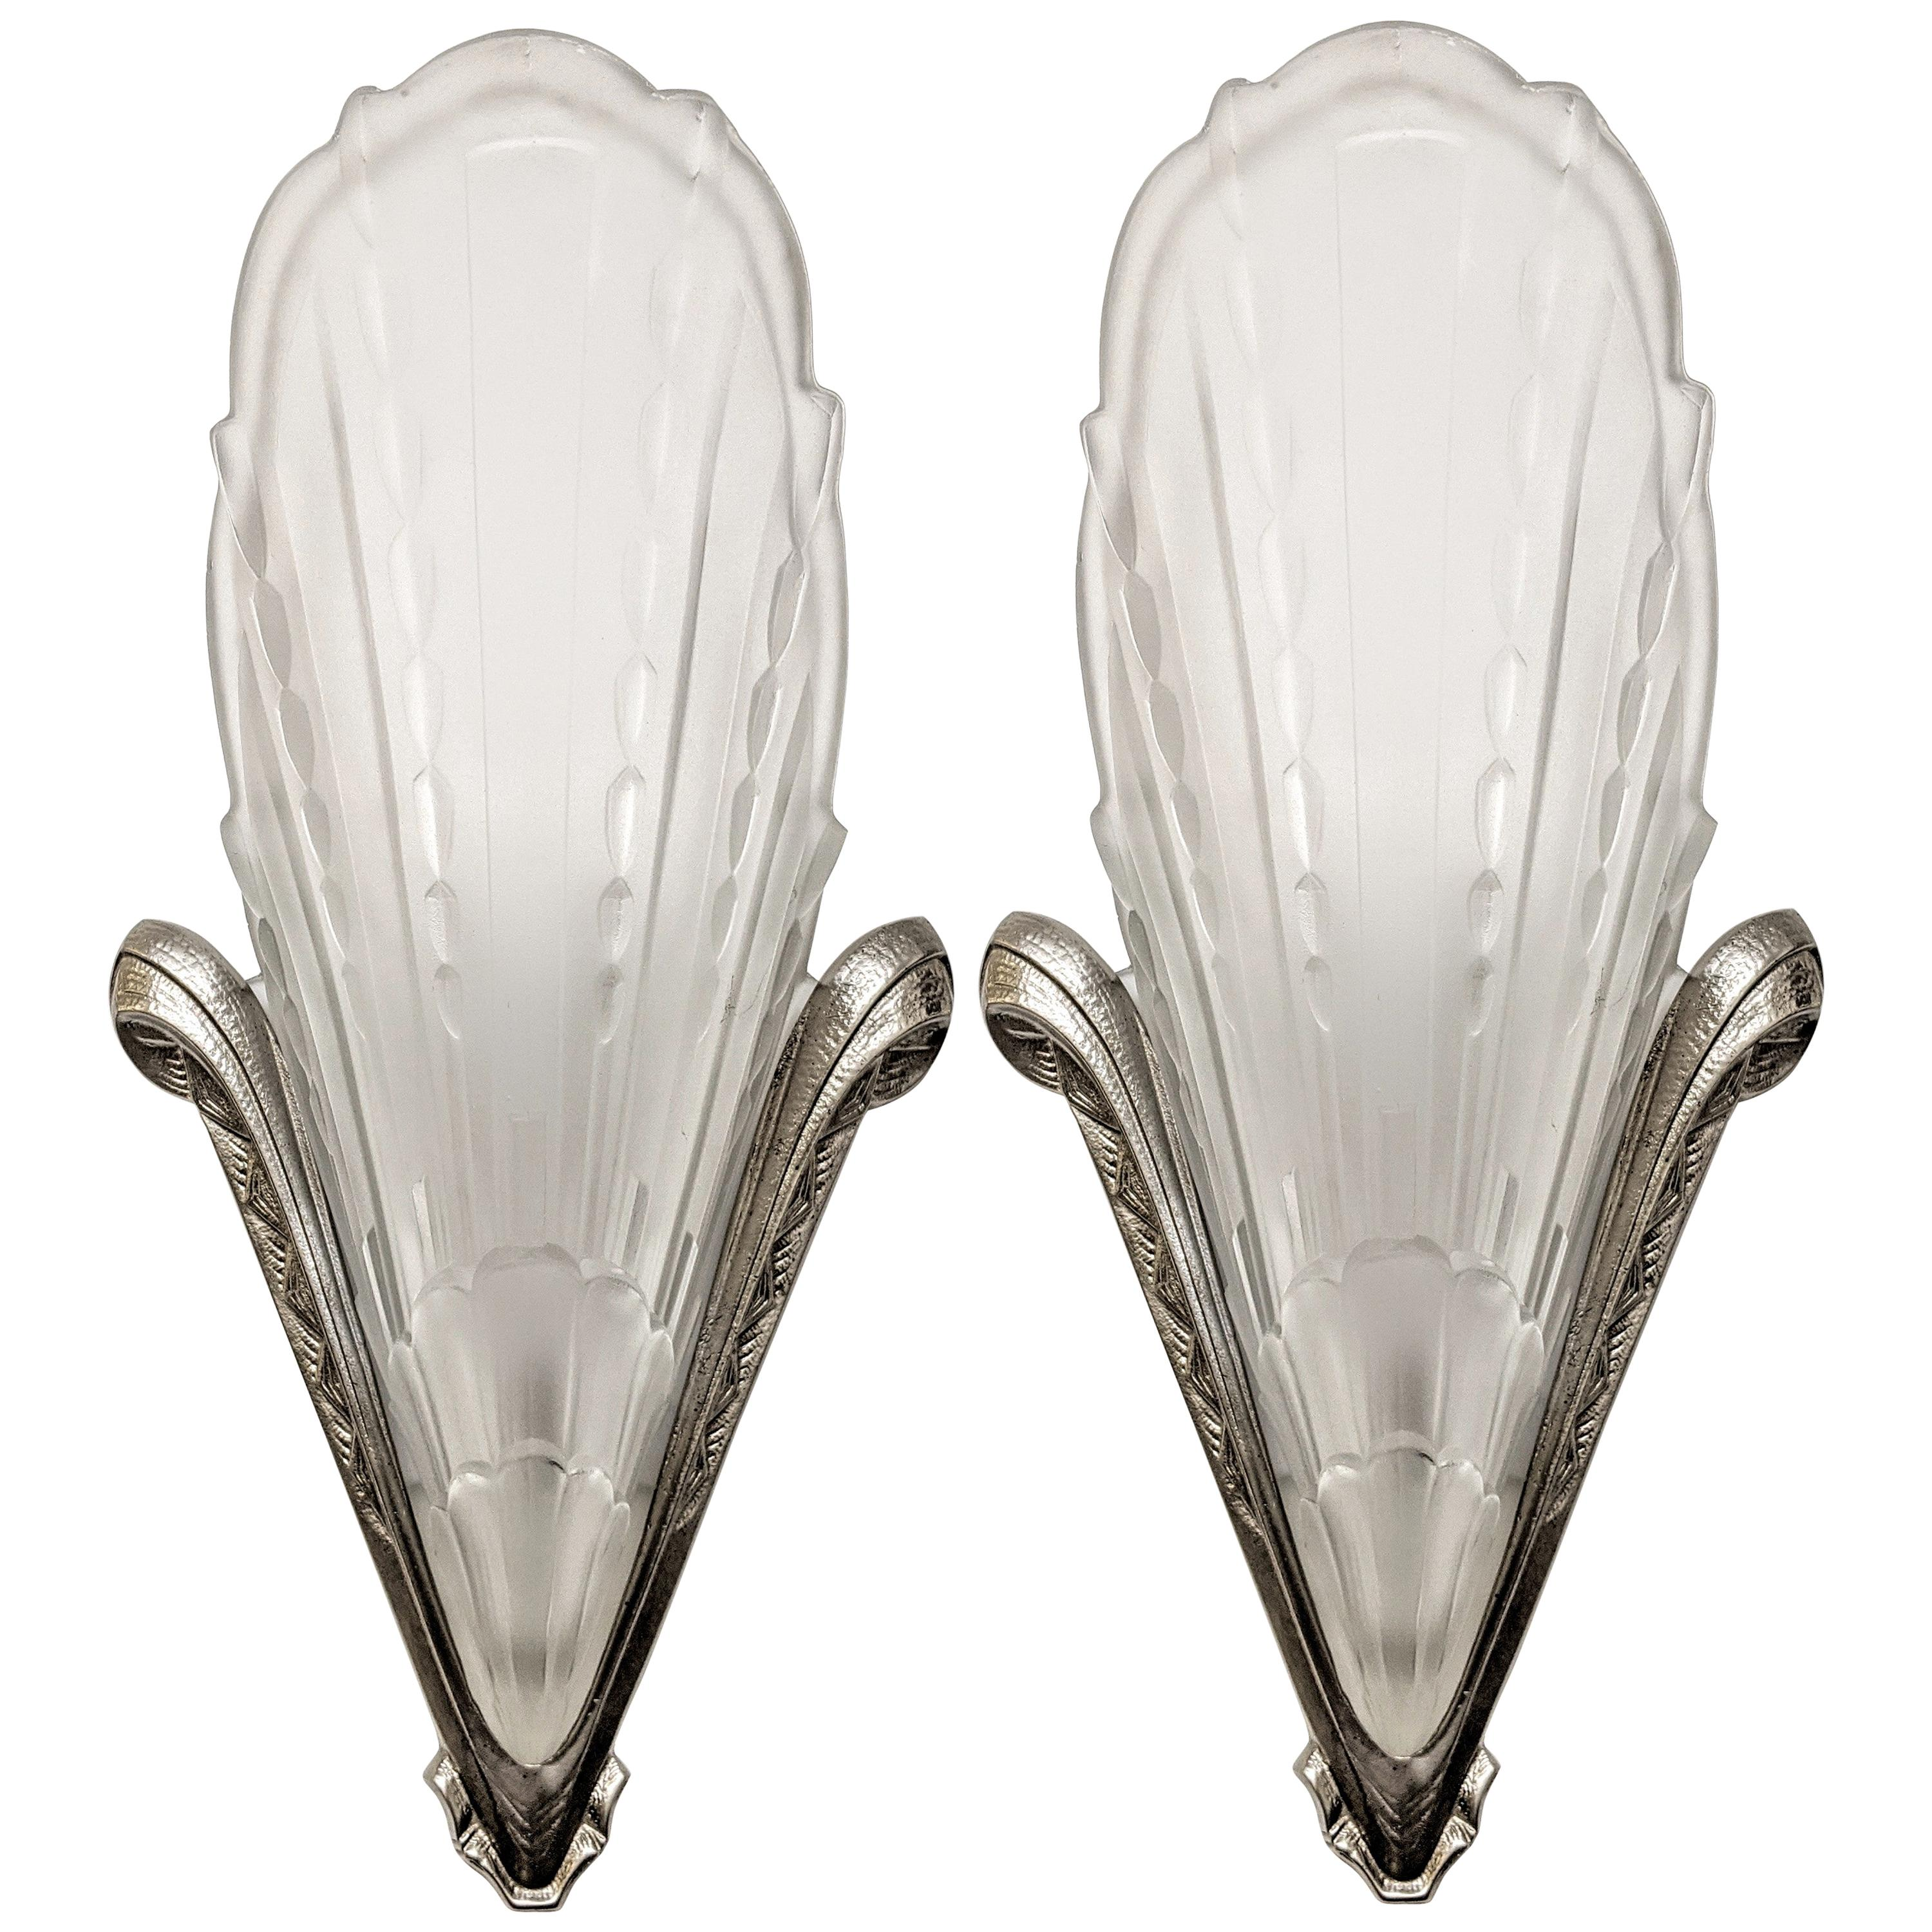 Pair of French Art Deco Wall Sconces by E.J.G.